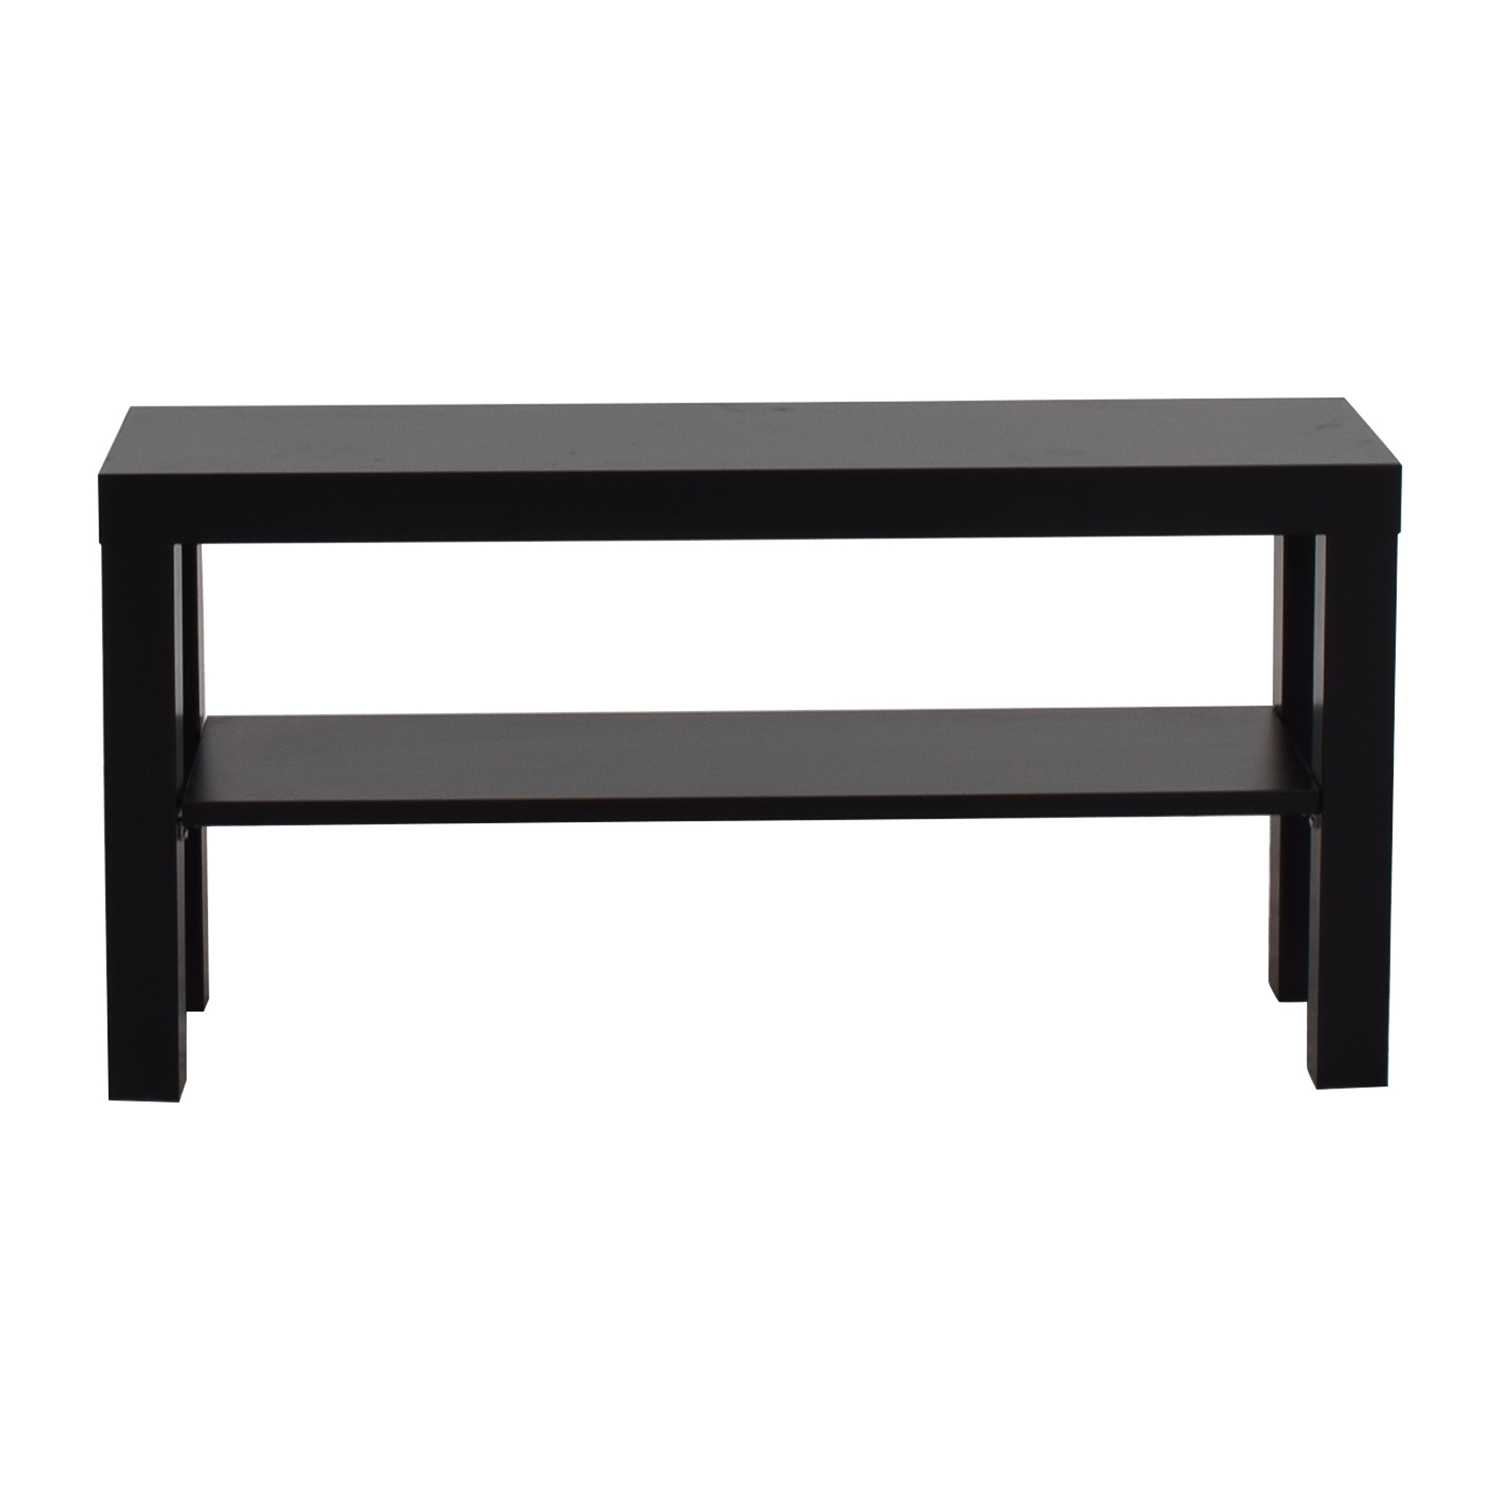 Ikea lack sofa table lack coffee table oak effect 90x55 cm - Ikea table tv ...